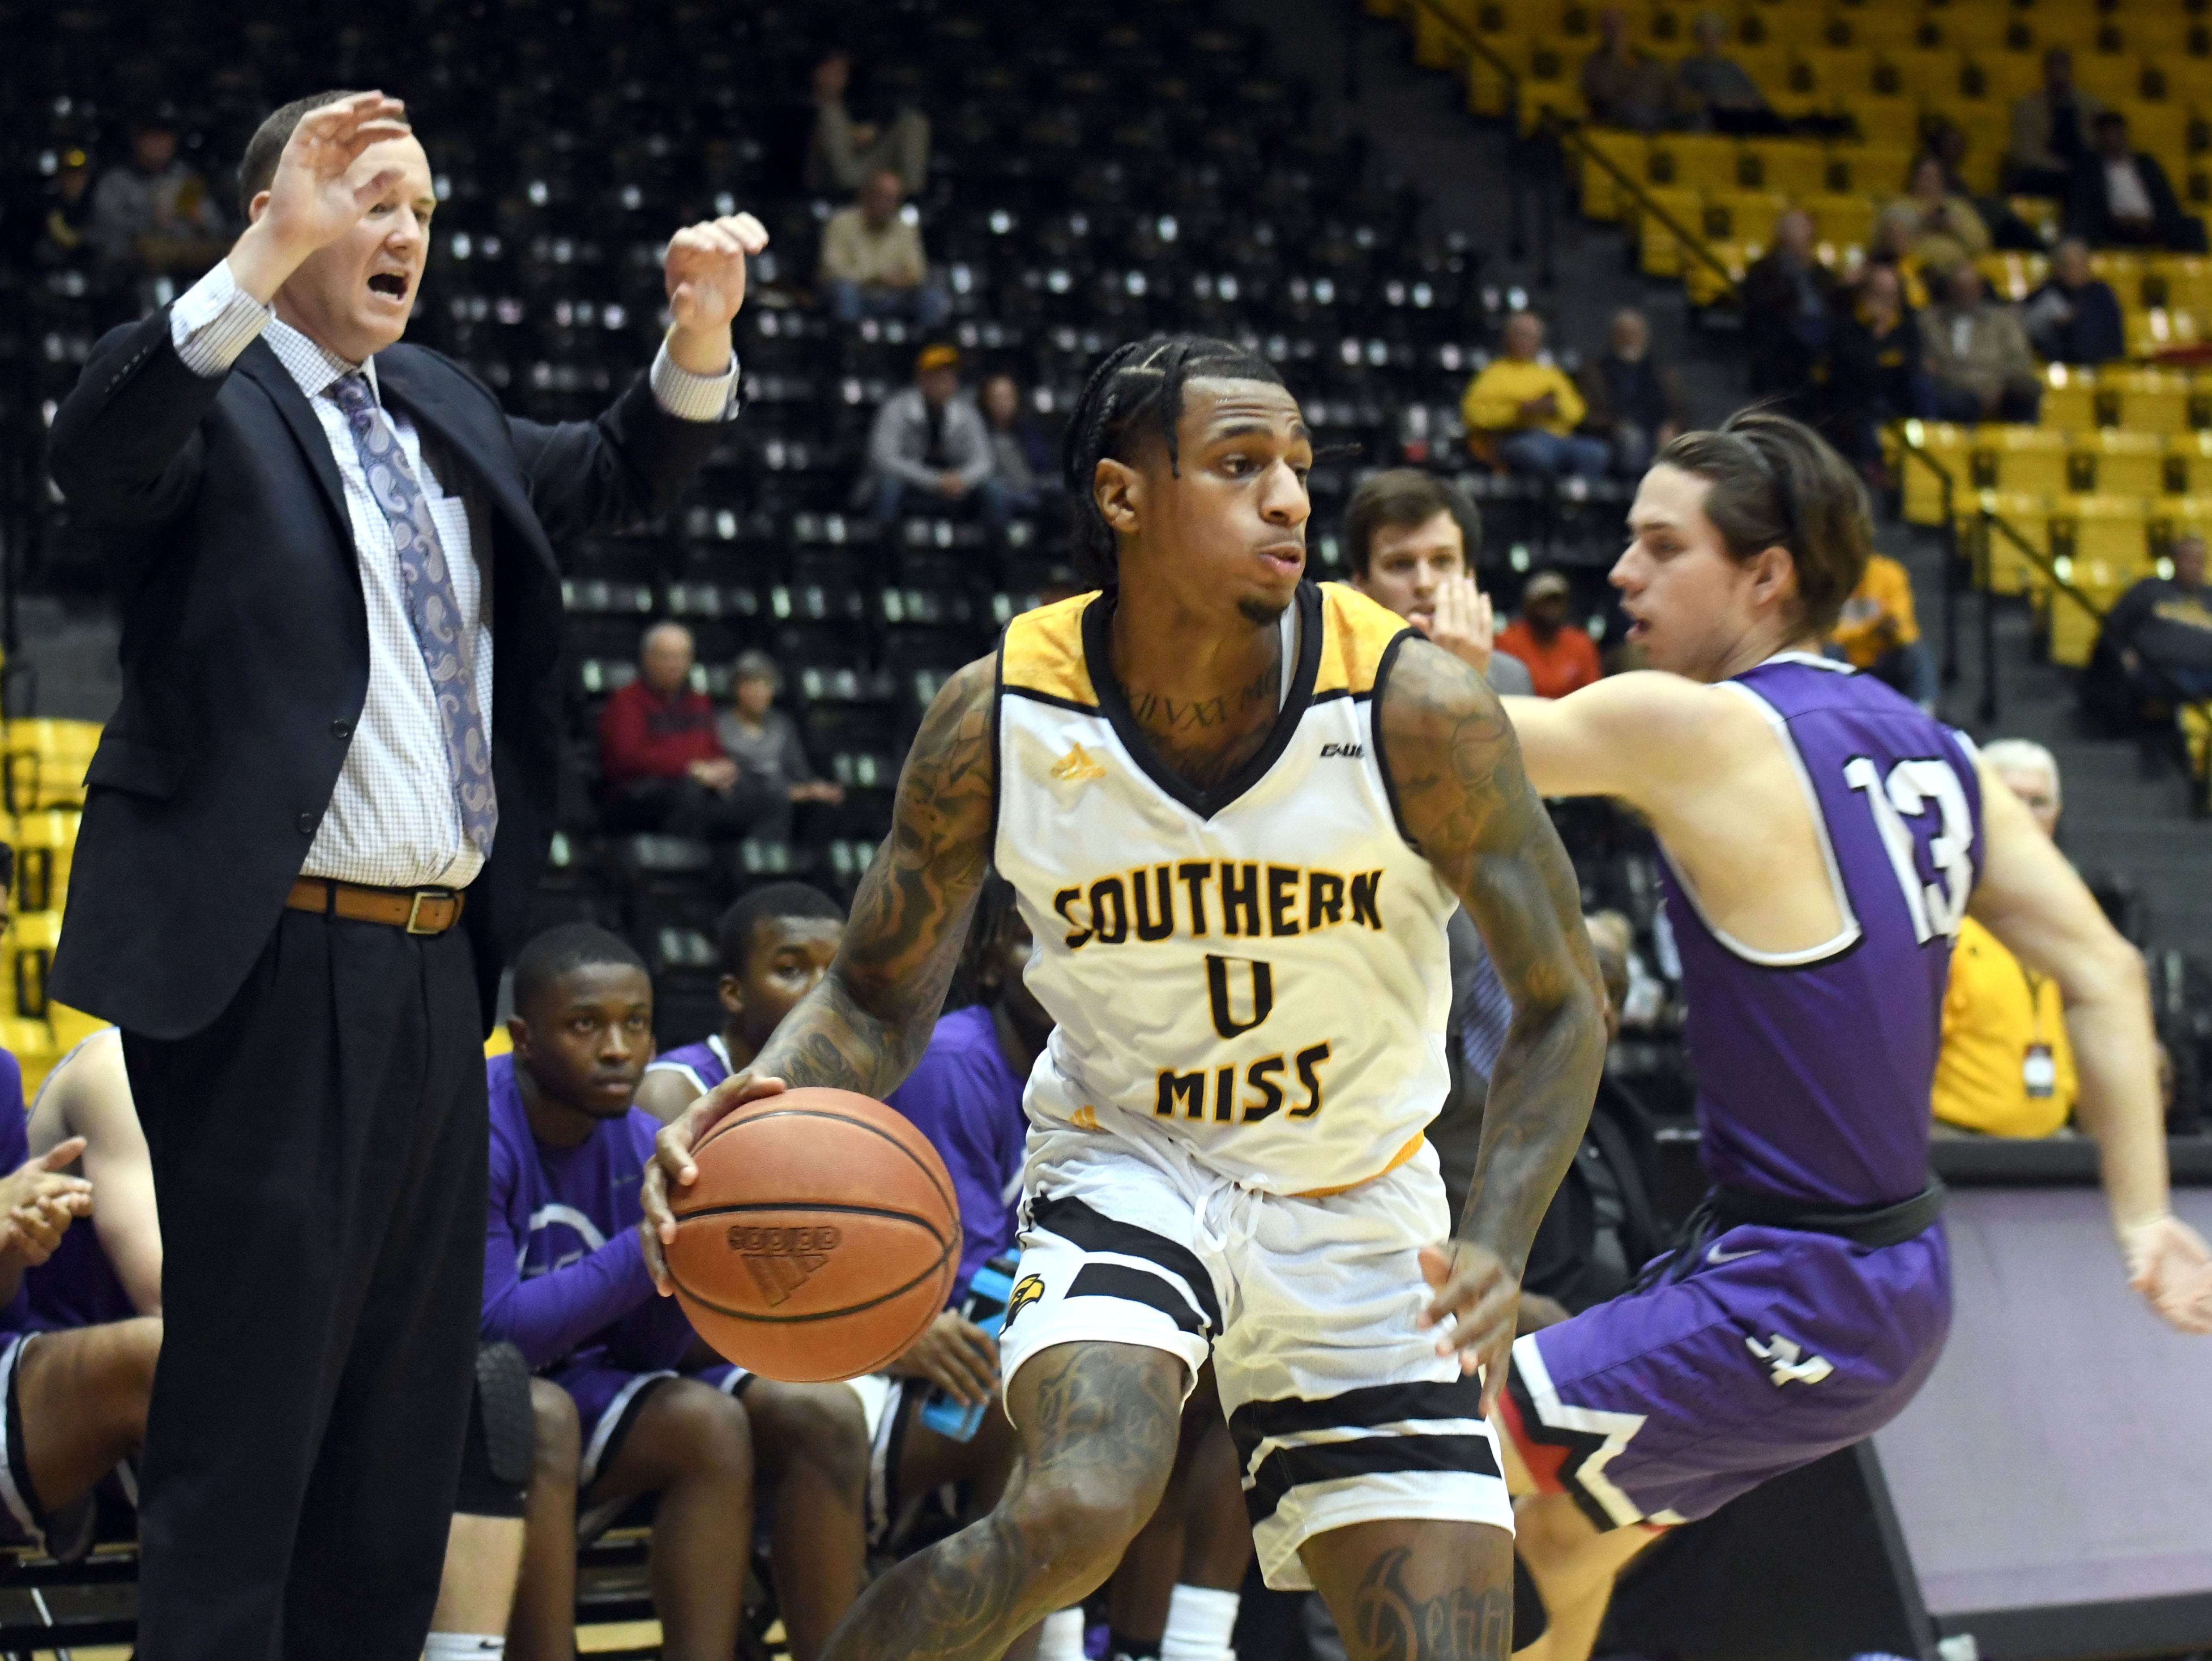 Southern Miss guard Dominic Magee takes control of the ball in a game against Millsaps in Reed Green Coliseum on Tuesday, December 11, 2018.